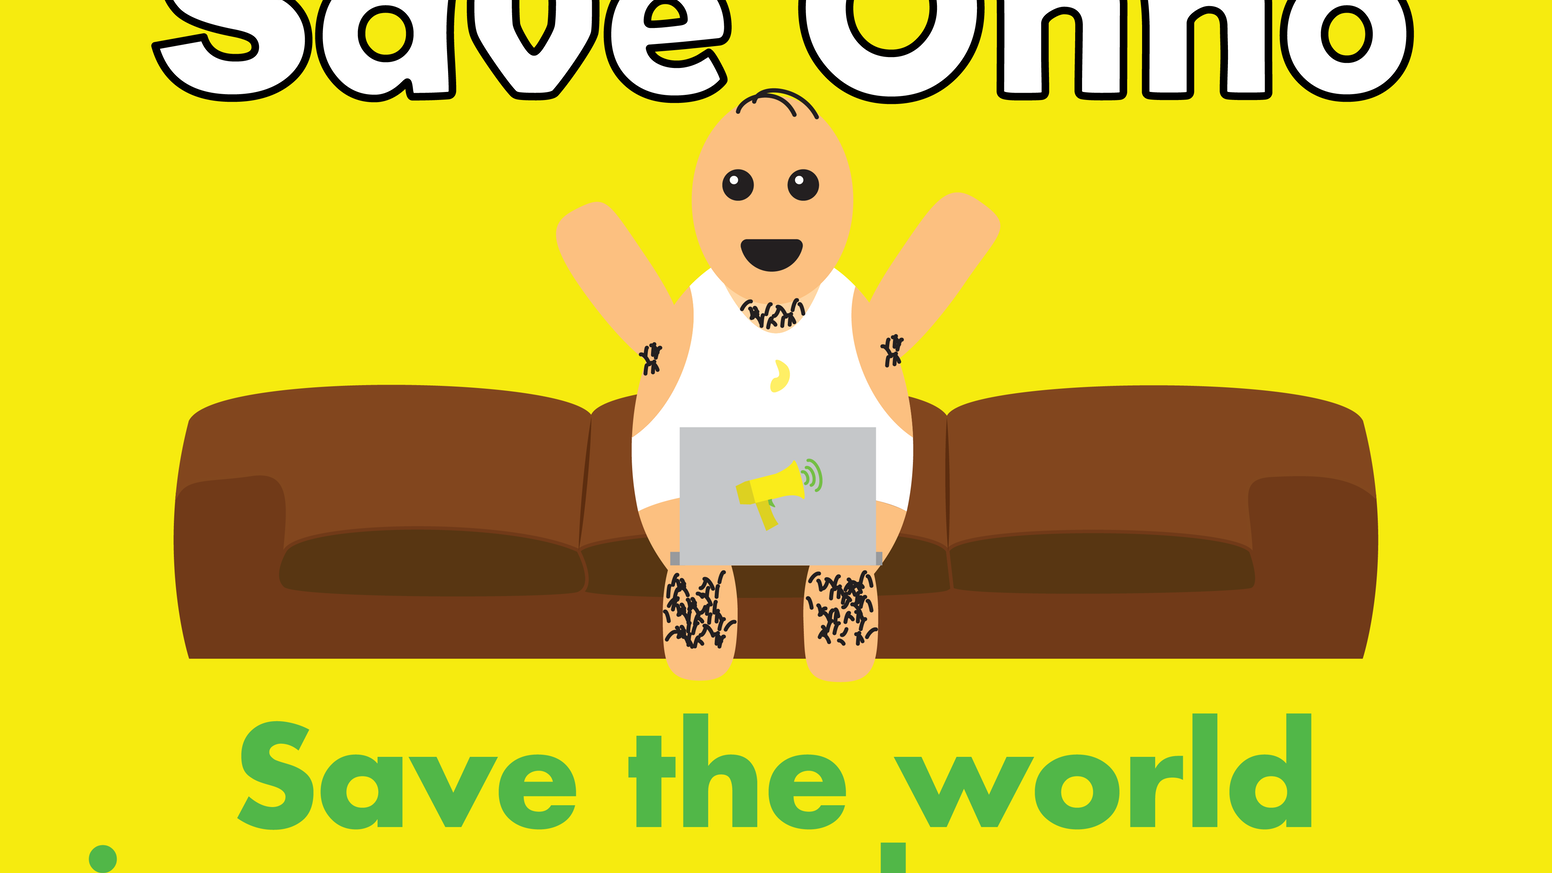 Start and support climate change campaigns and see the benefits on Ohno's life through this gamified platform.